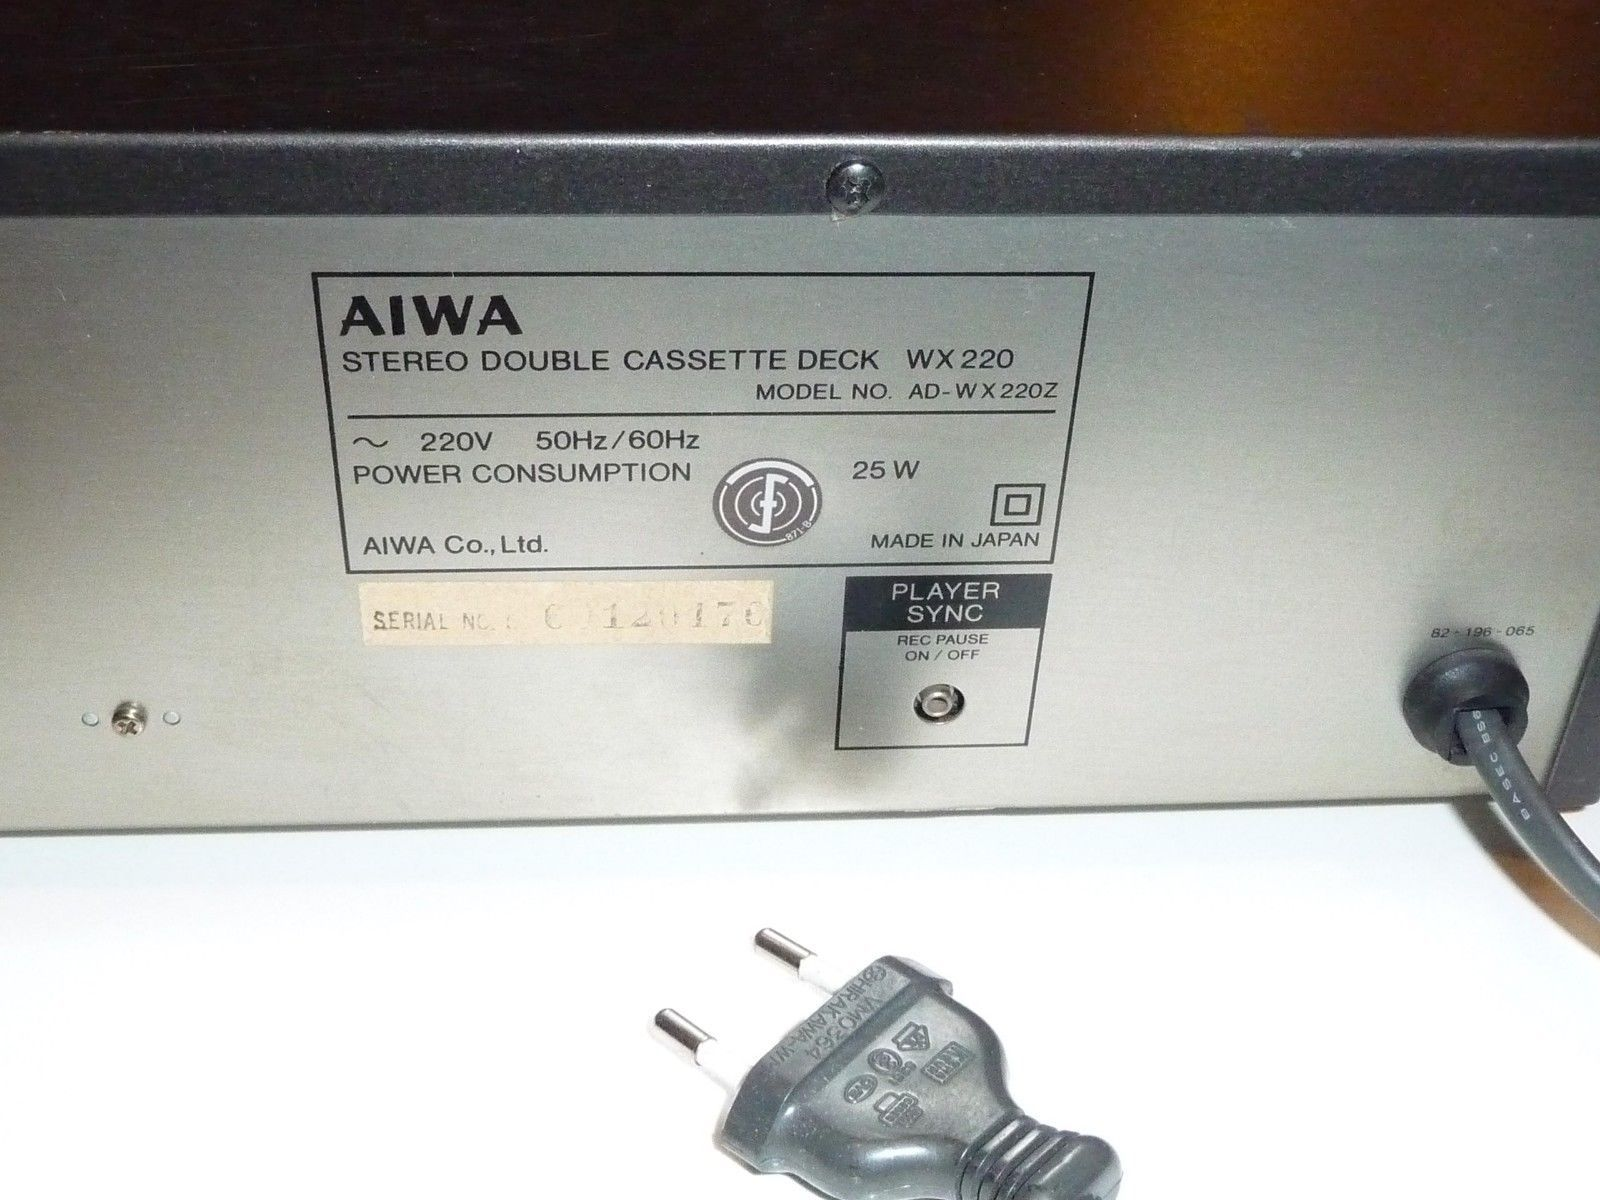 AIWA AD-WX 220 Stereo Double Cassette Deck High Precision Double Speed 220V